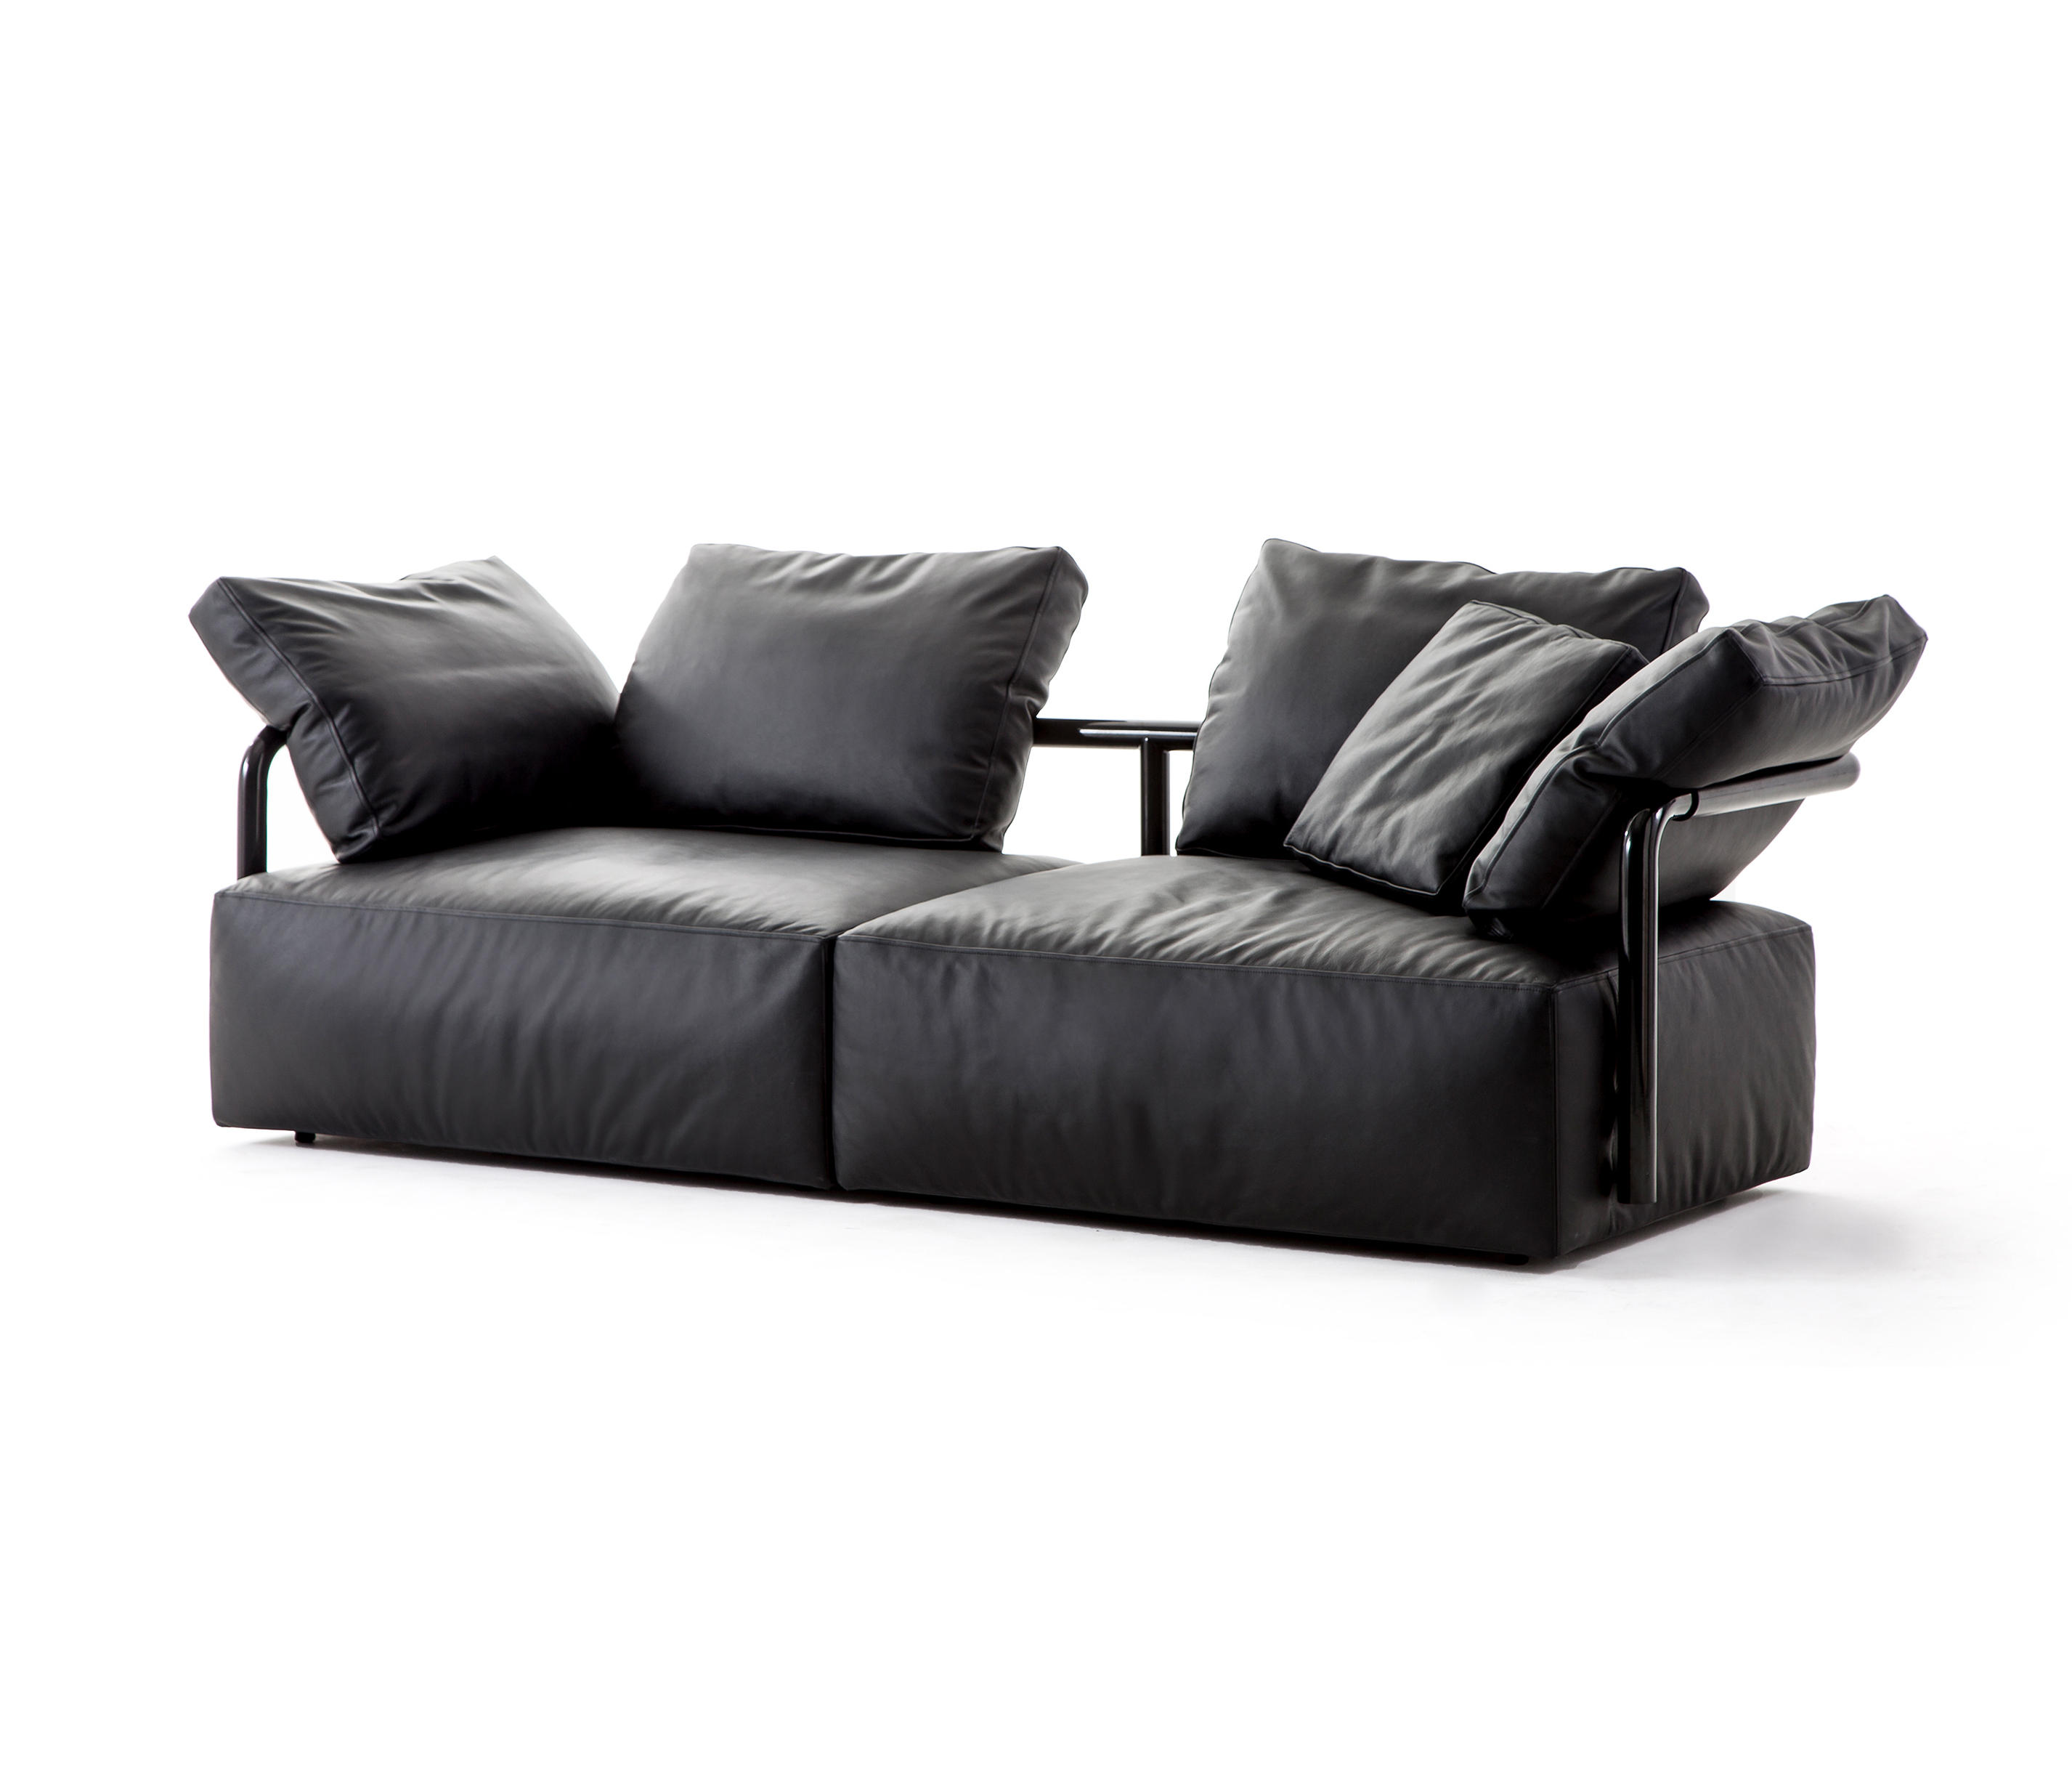 503 SOFT PROPS - Sofas From Cassina